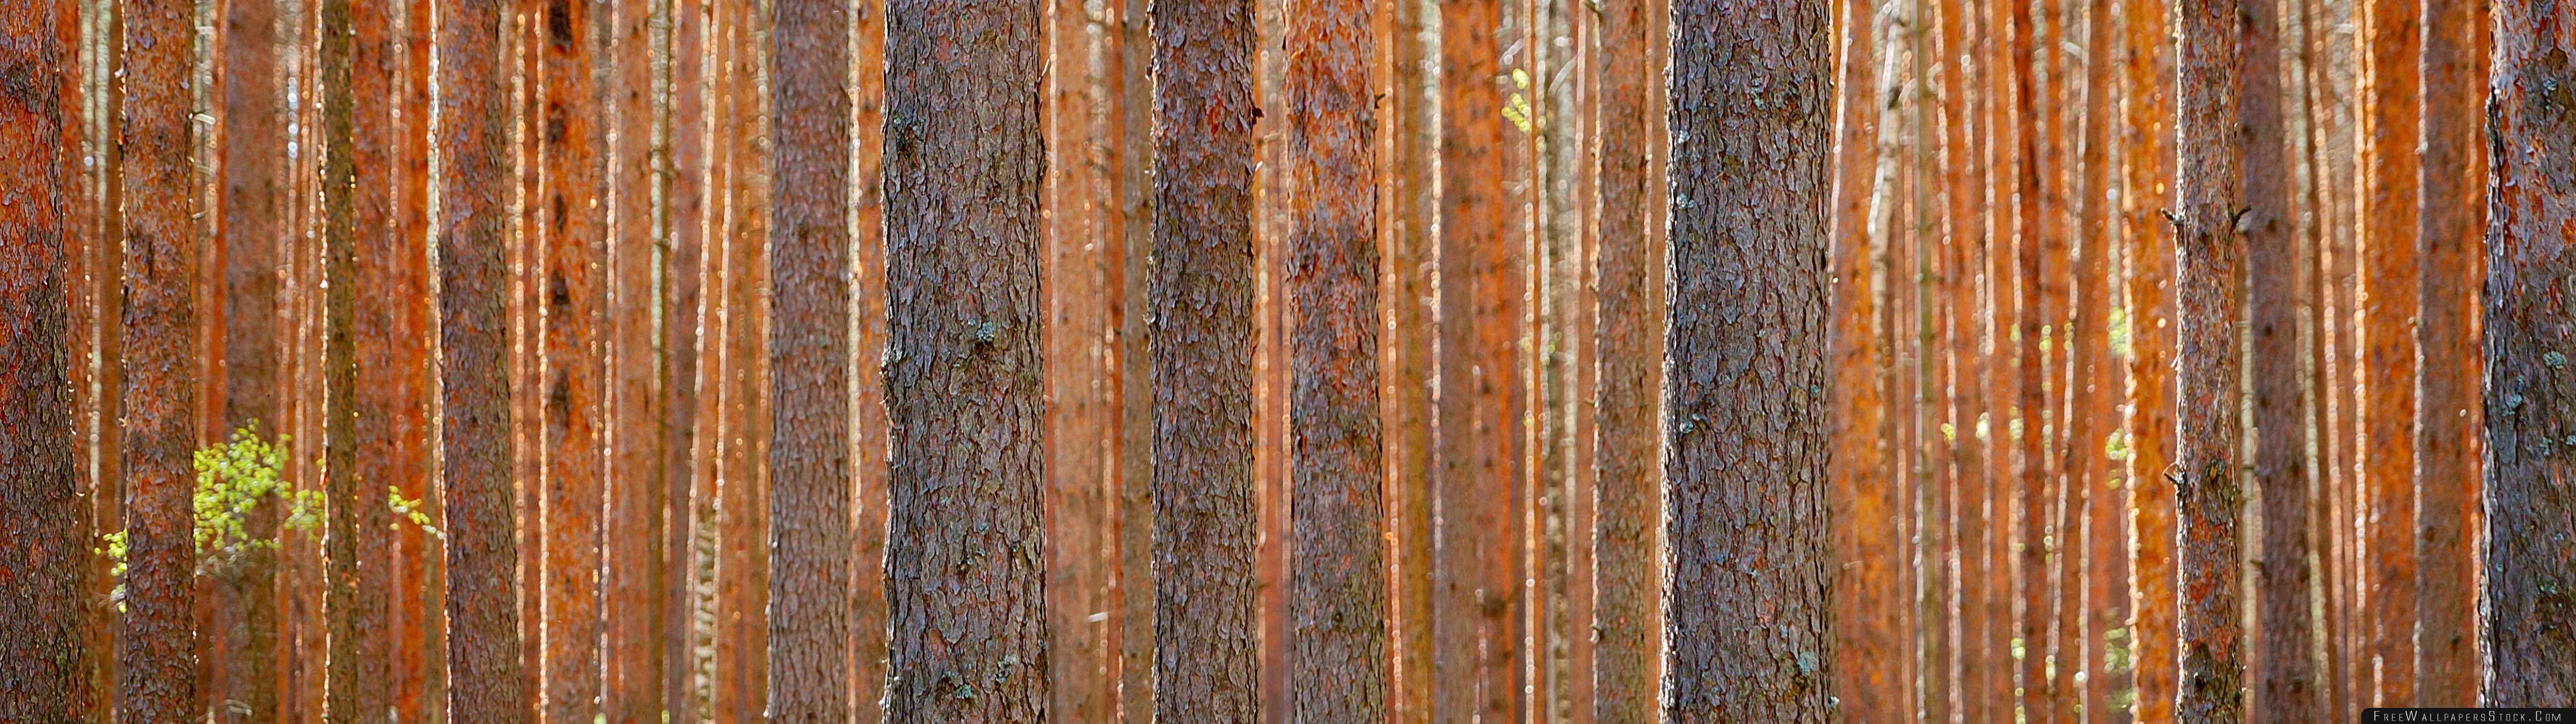 Download Free Wallpaper Pine Forest